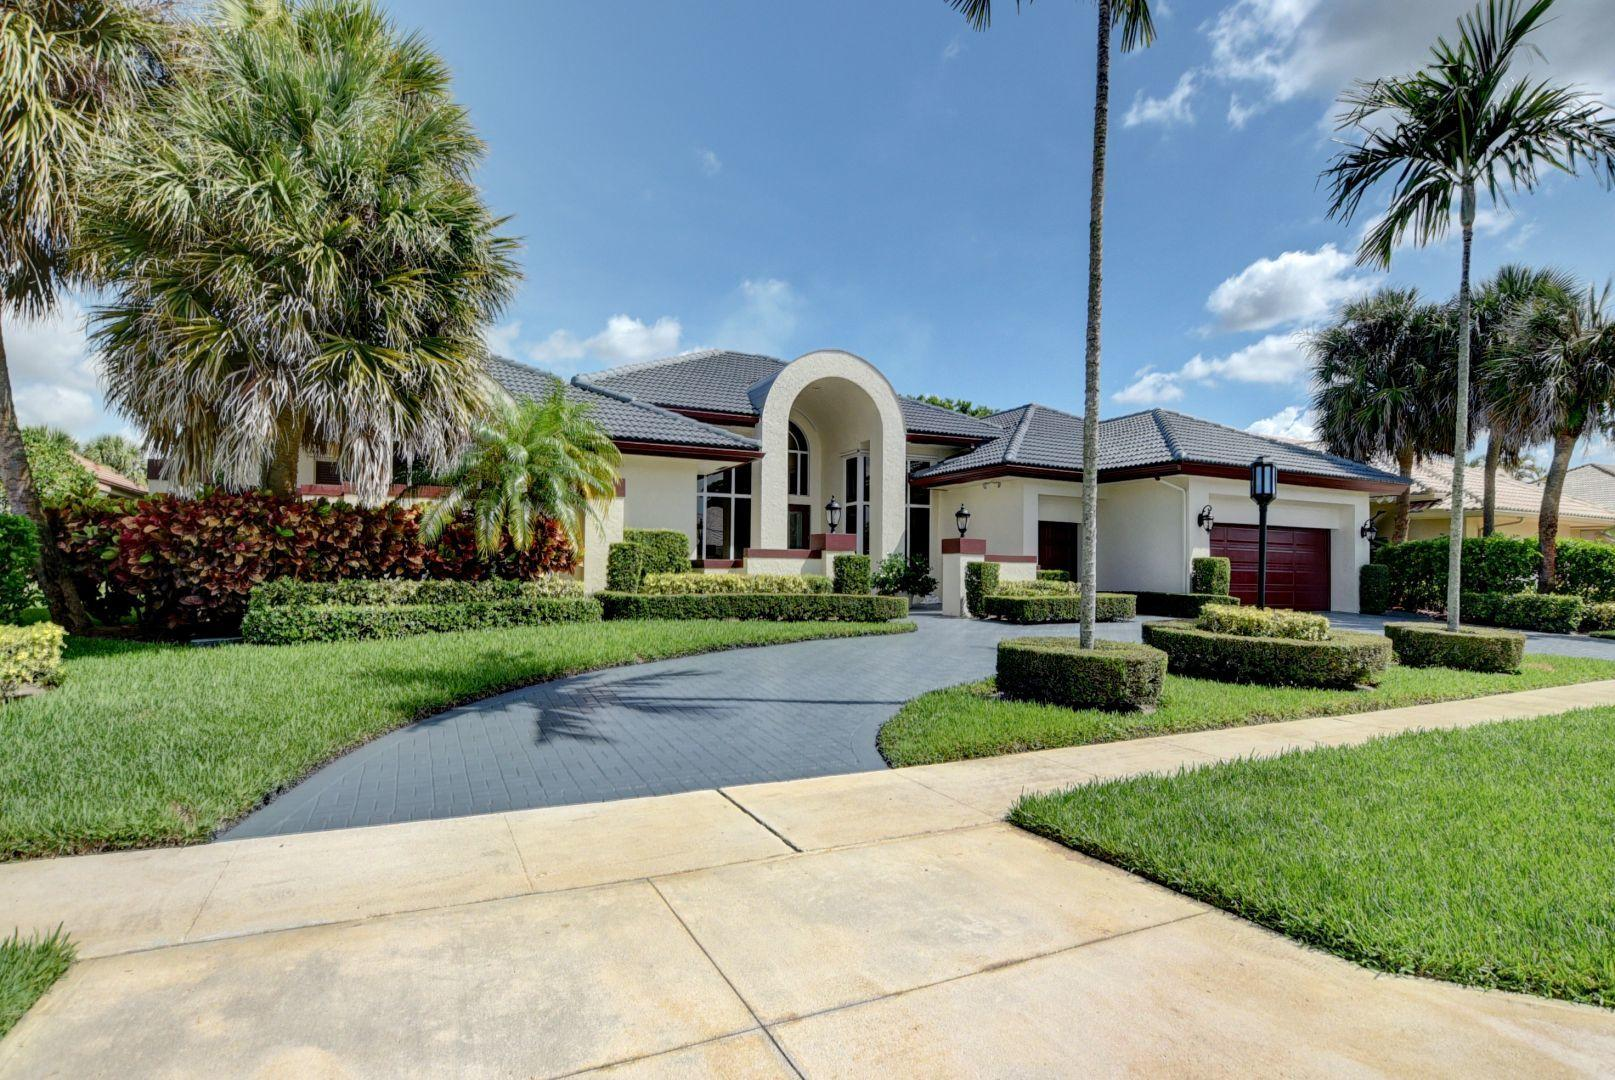 Photo of 10265 Shireoaks Lane, Boca Raton, FL 33498